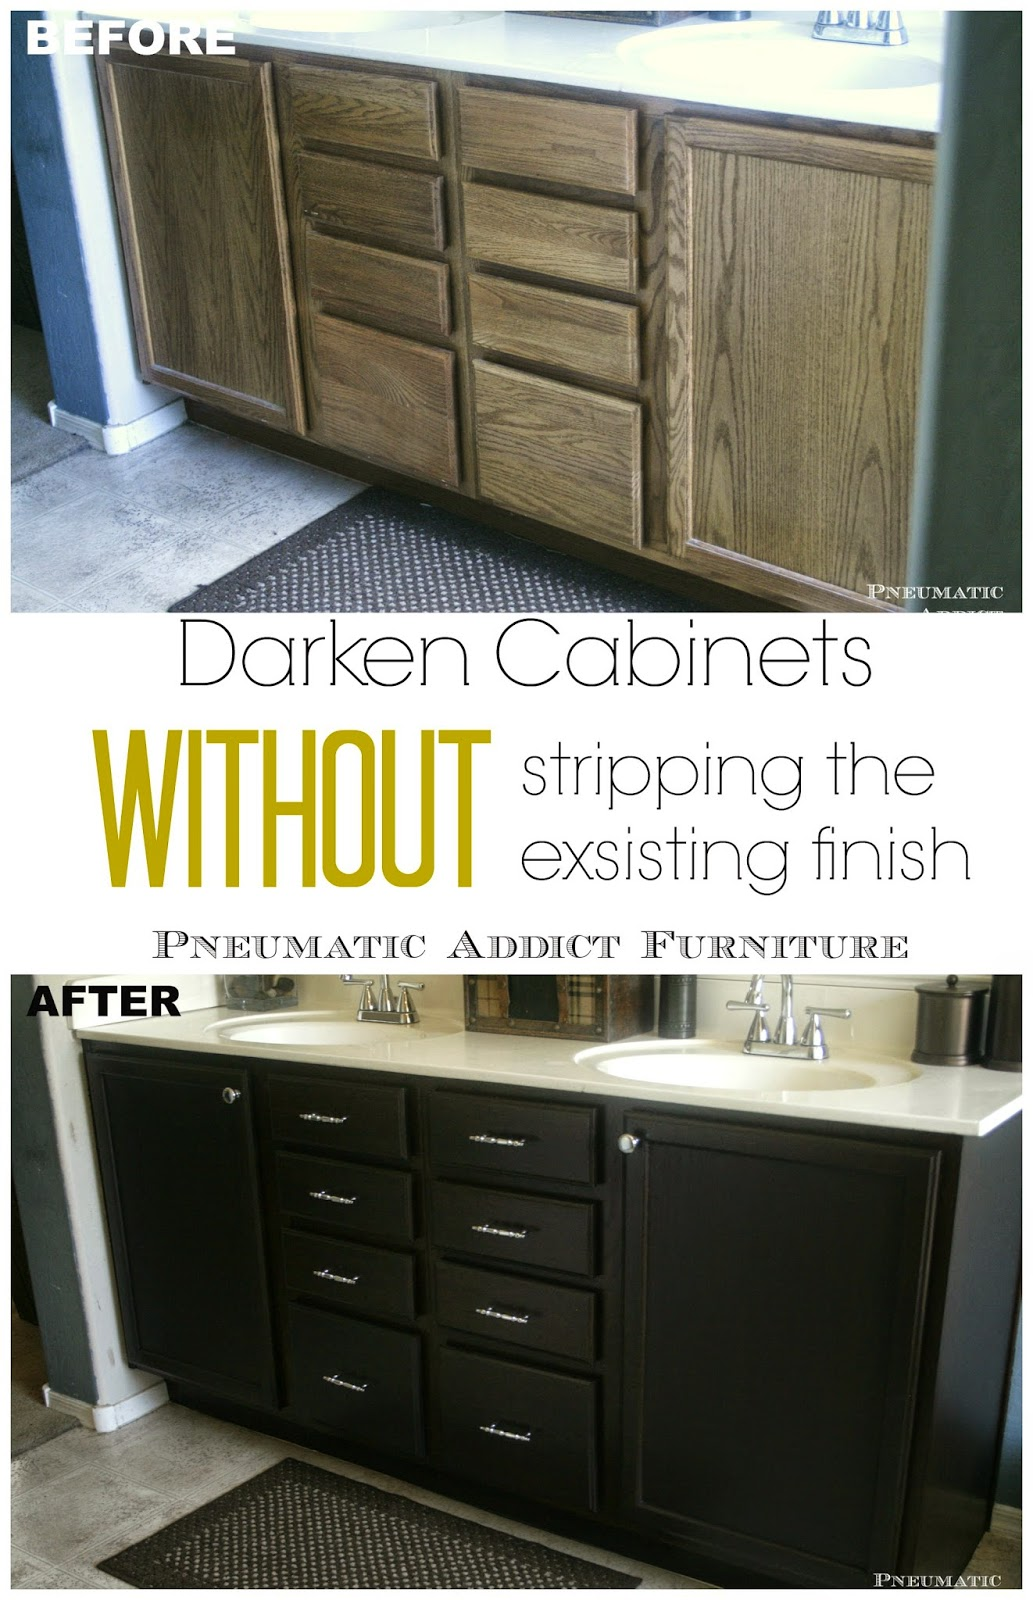 pneumatic addict : darken cabinets without stripping the existing